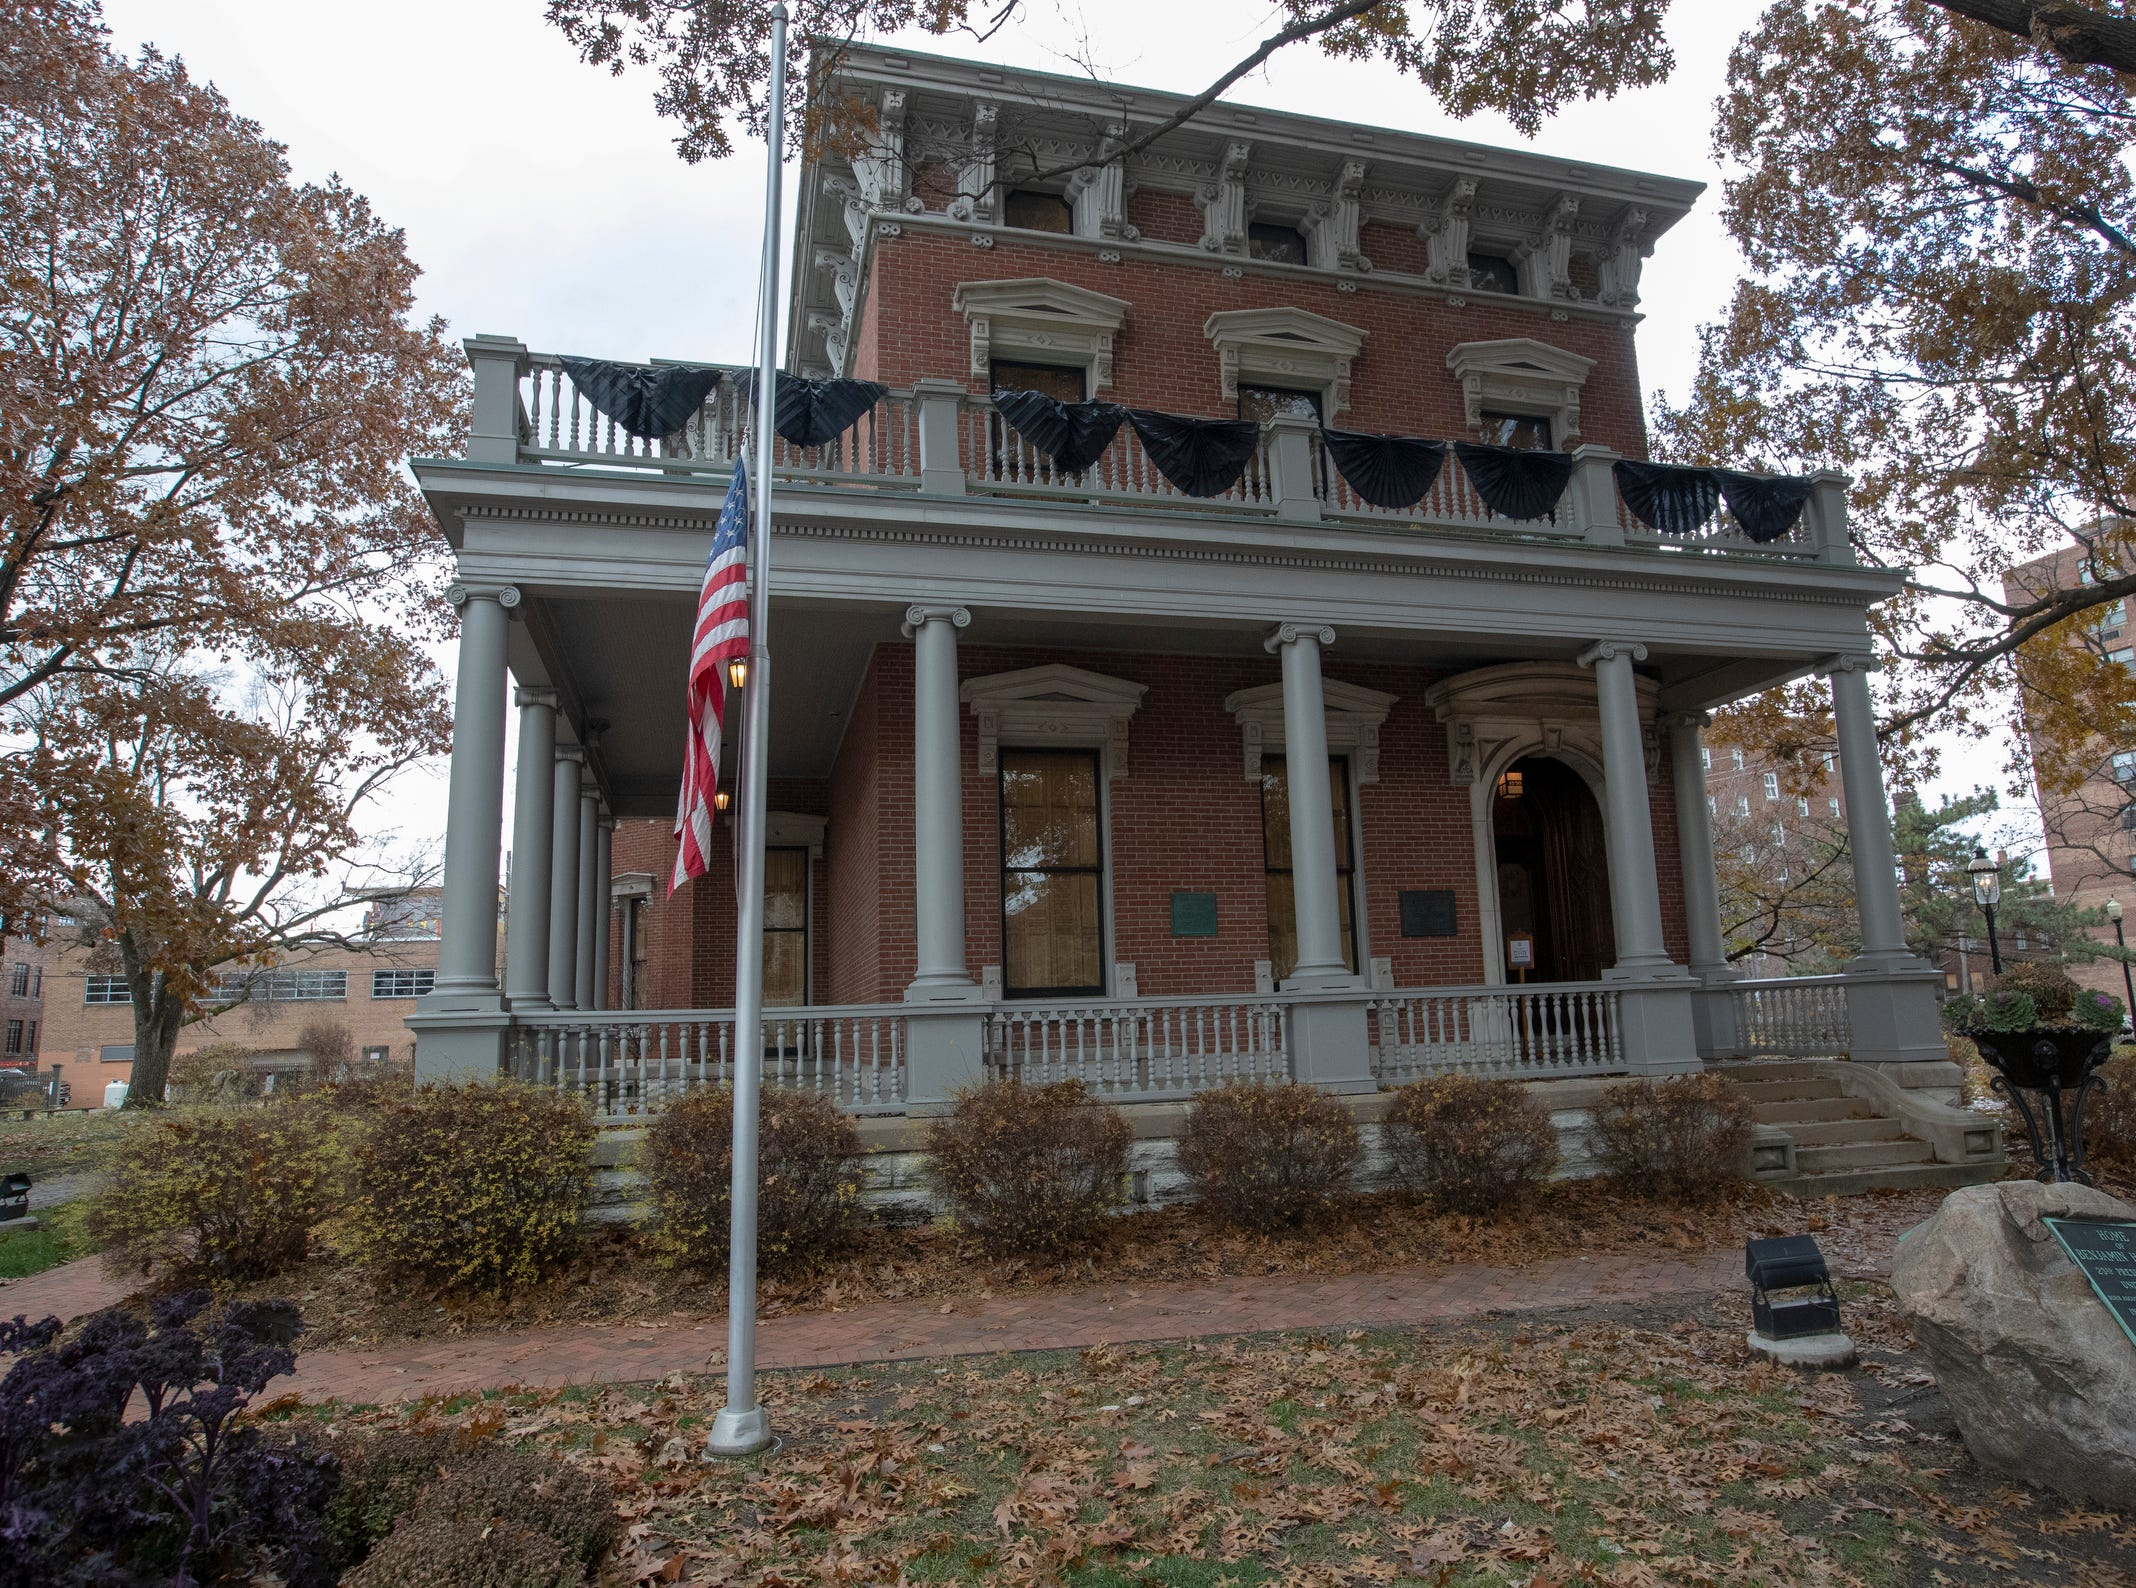 Mourning bunting being installed at the Benjamin Harrison Presidential Site, Indianapolis, Sunday, Dec. 2, 2018. This display, which will cover the railings on top and bottom, and a half-mast flag, pay respects to George H. W. Bush, the 41st President, who died on Friday evening in Houston.